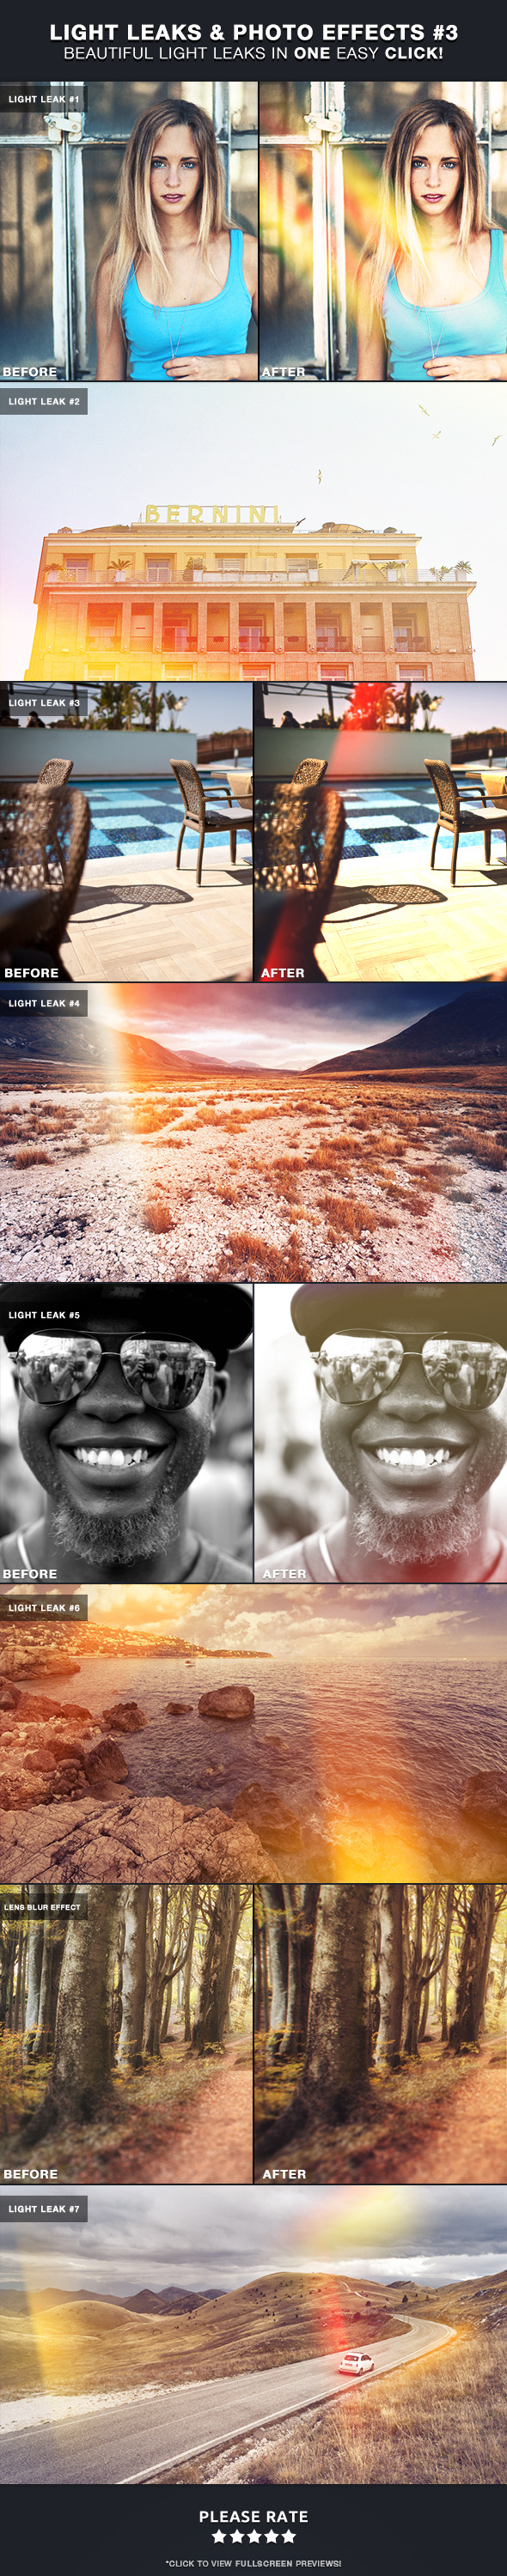 Light Leaks & Photo Effects #3 - Photo Effects Actions